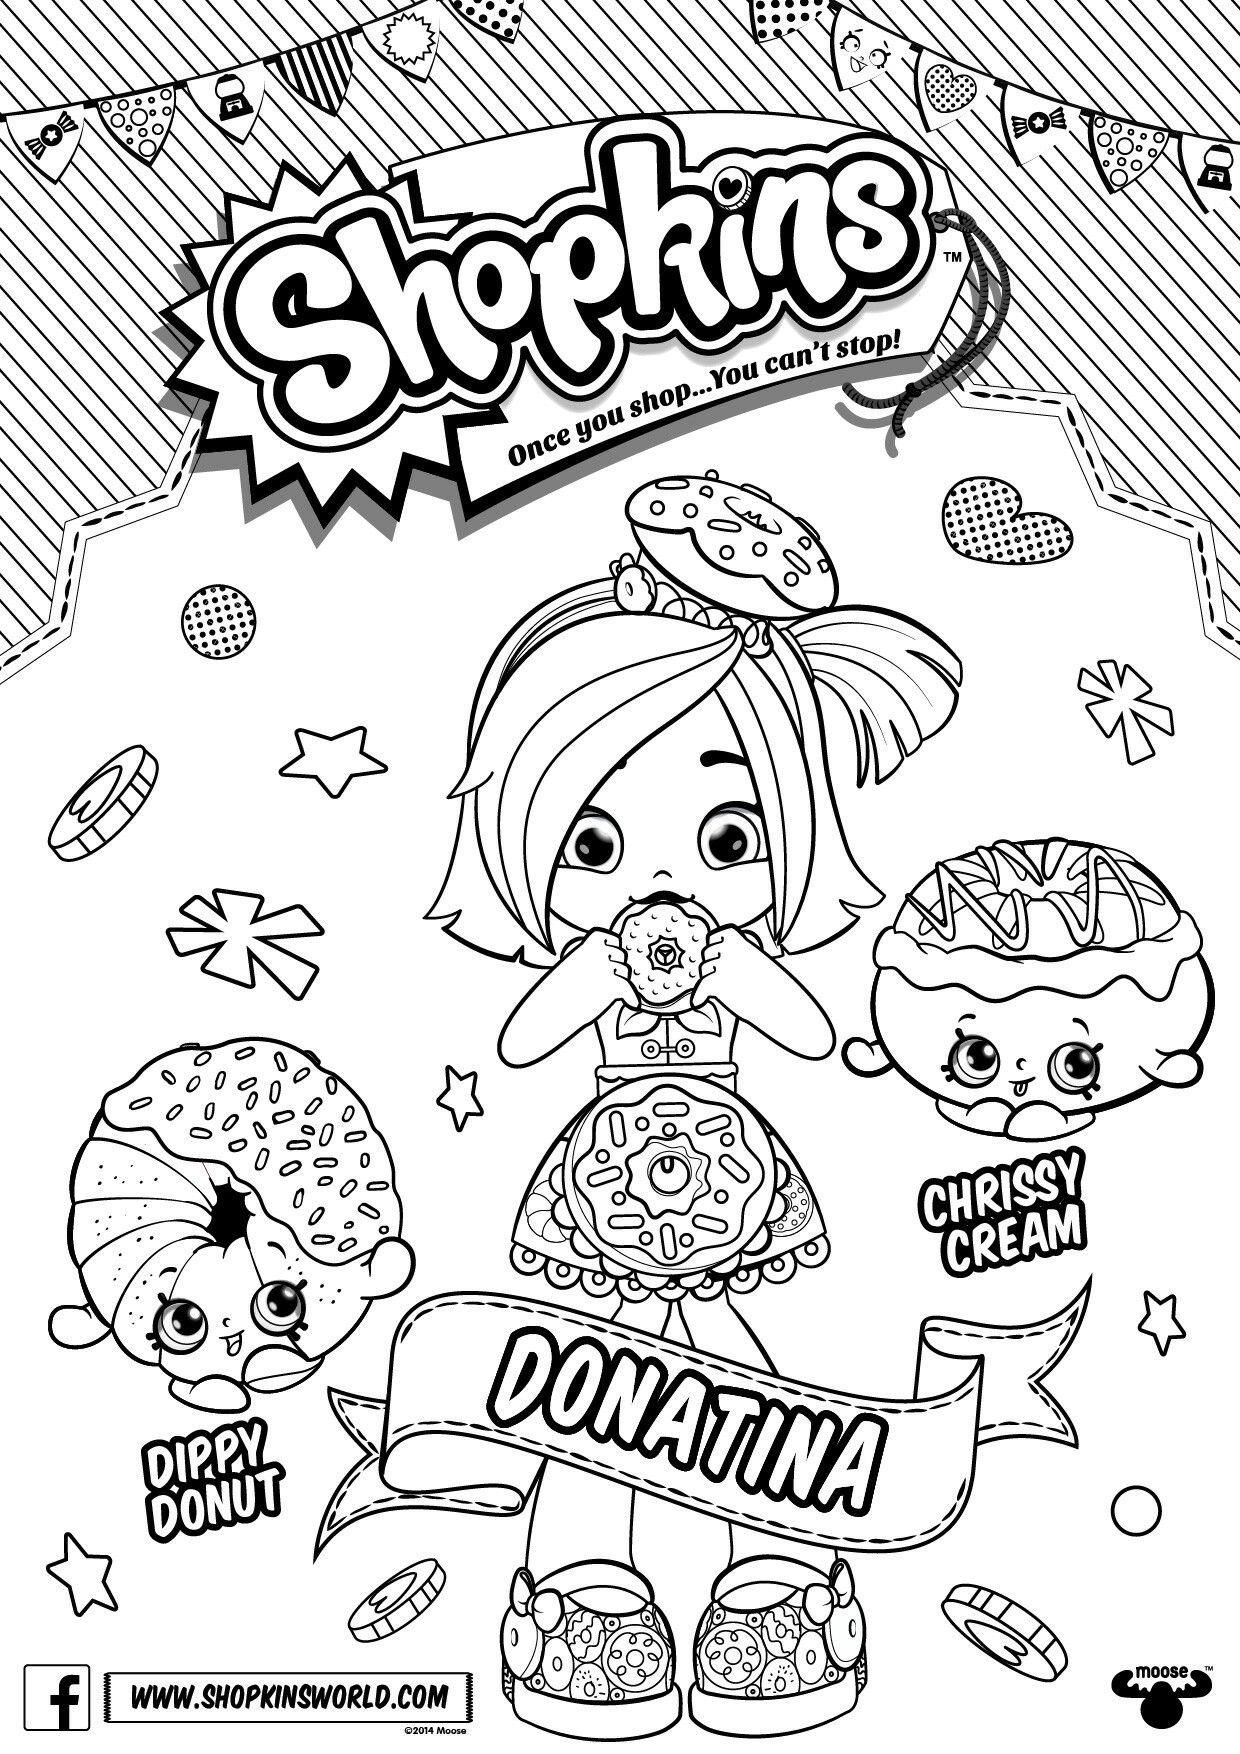 Pin de Dawn Ordiway en Shopkins Coloring Pages | Pinterest ...